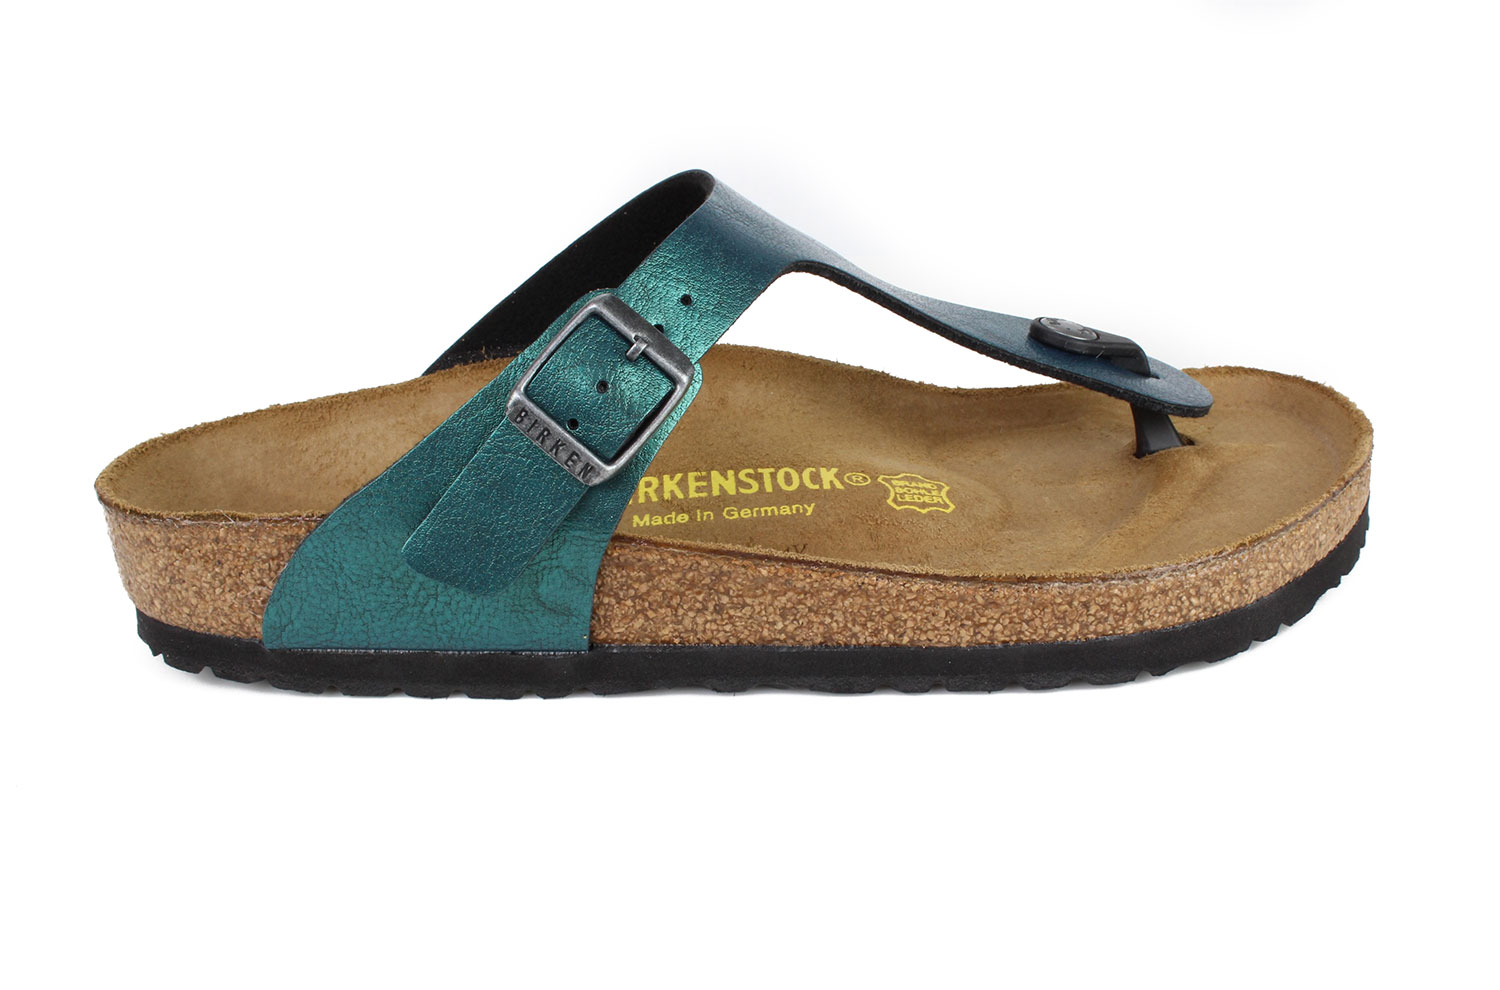 Birkenstock-Gizeh-Birko-Flor-Womens-Shoes-Slides-Sandals-anatomical-footbed-NEW thumbnail 23